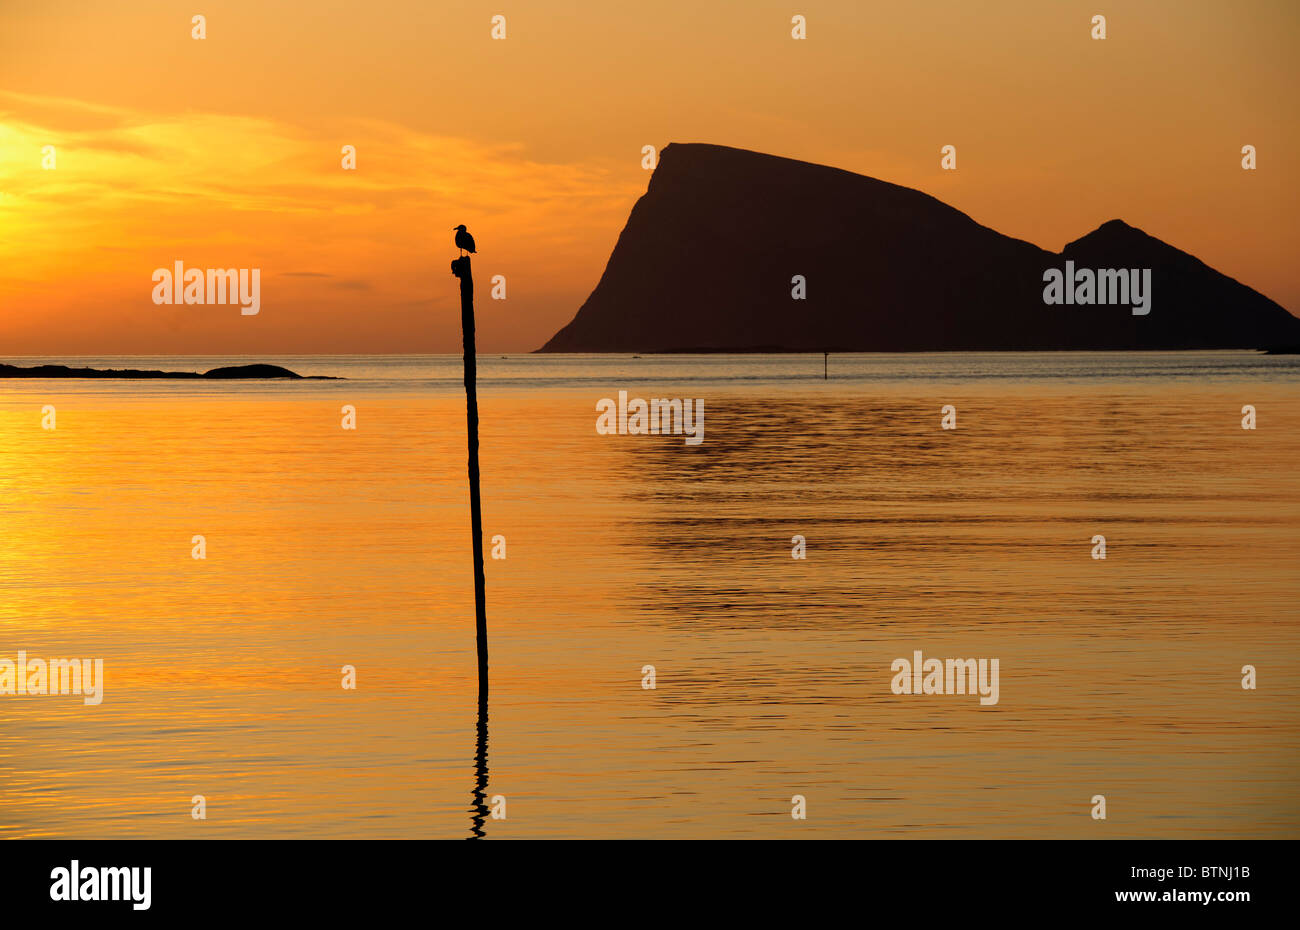 Seagull sitting on a pole, a seamark. Midnight sun in North Norway. Silhouette of the mountain Haja (Håja) in the Stock Photo